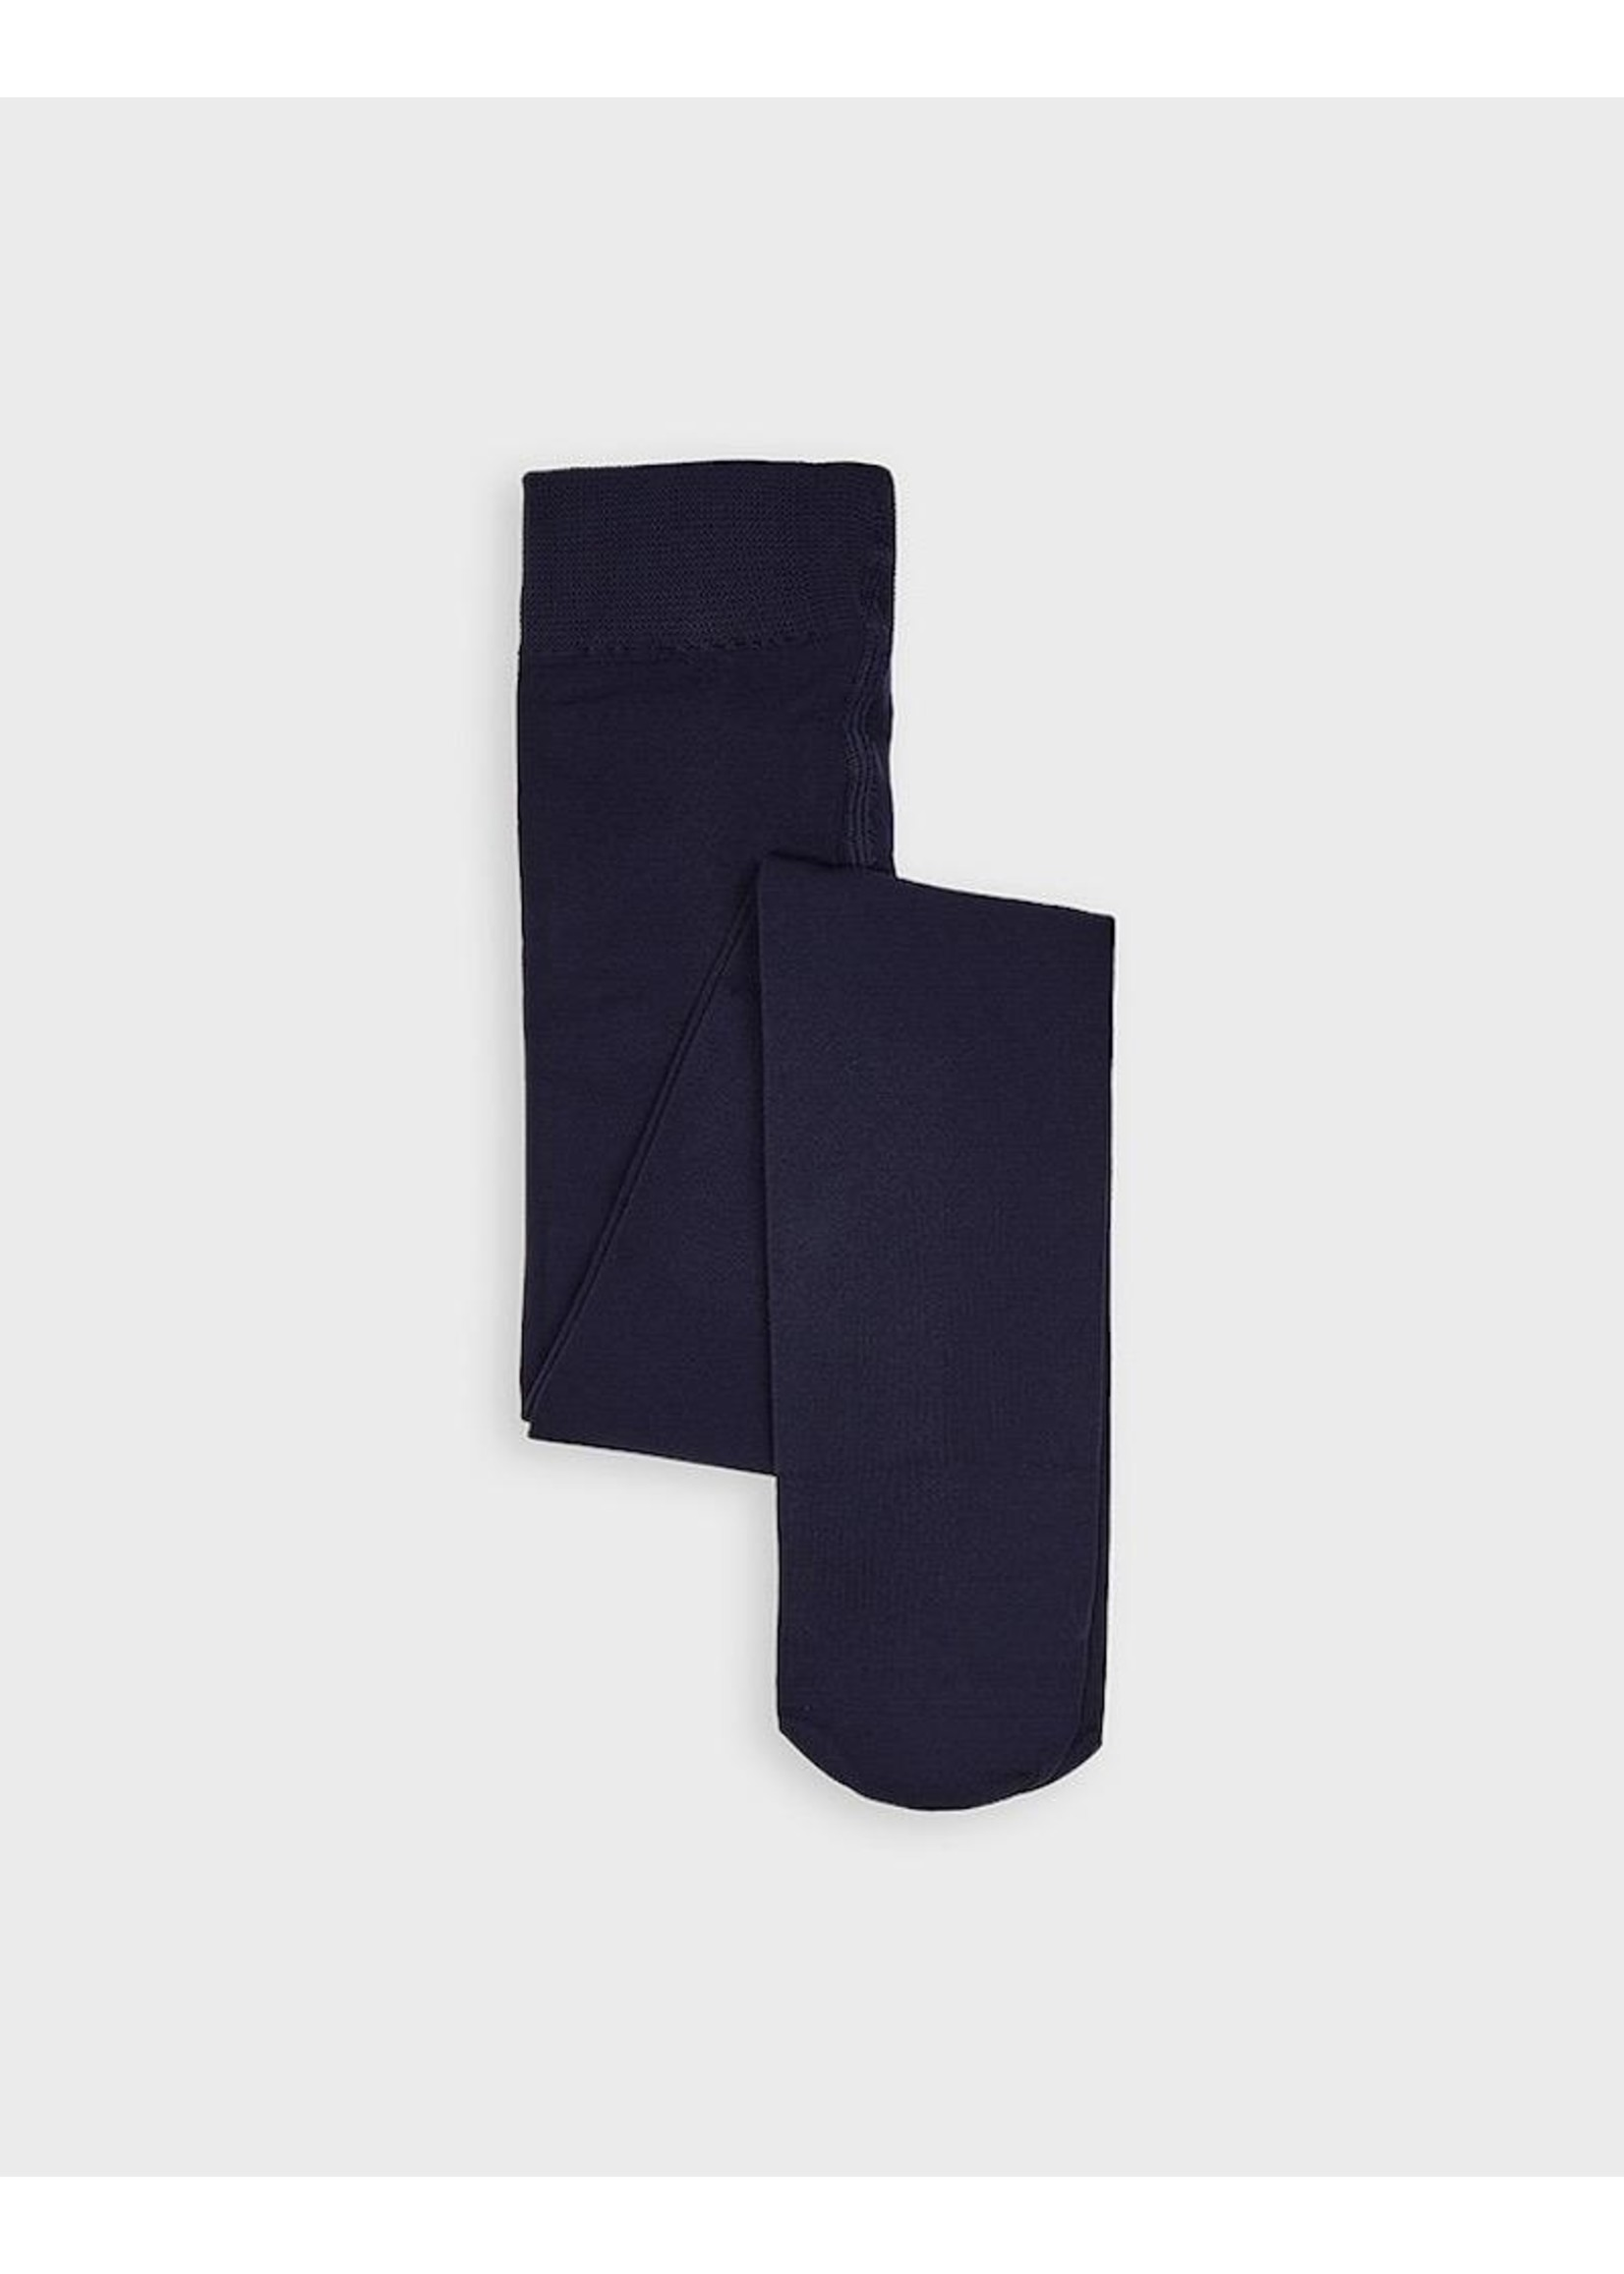 Mayoral Mayoral, Soft Girl's Tights in Navy Blue